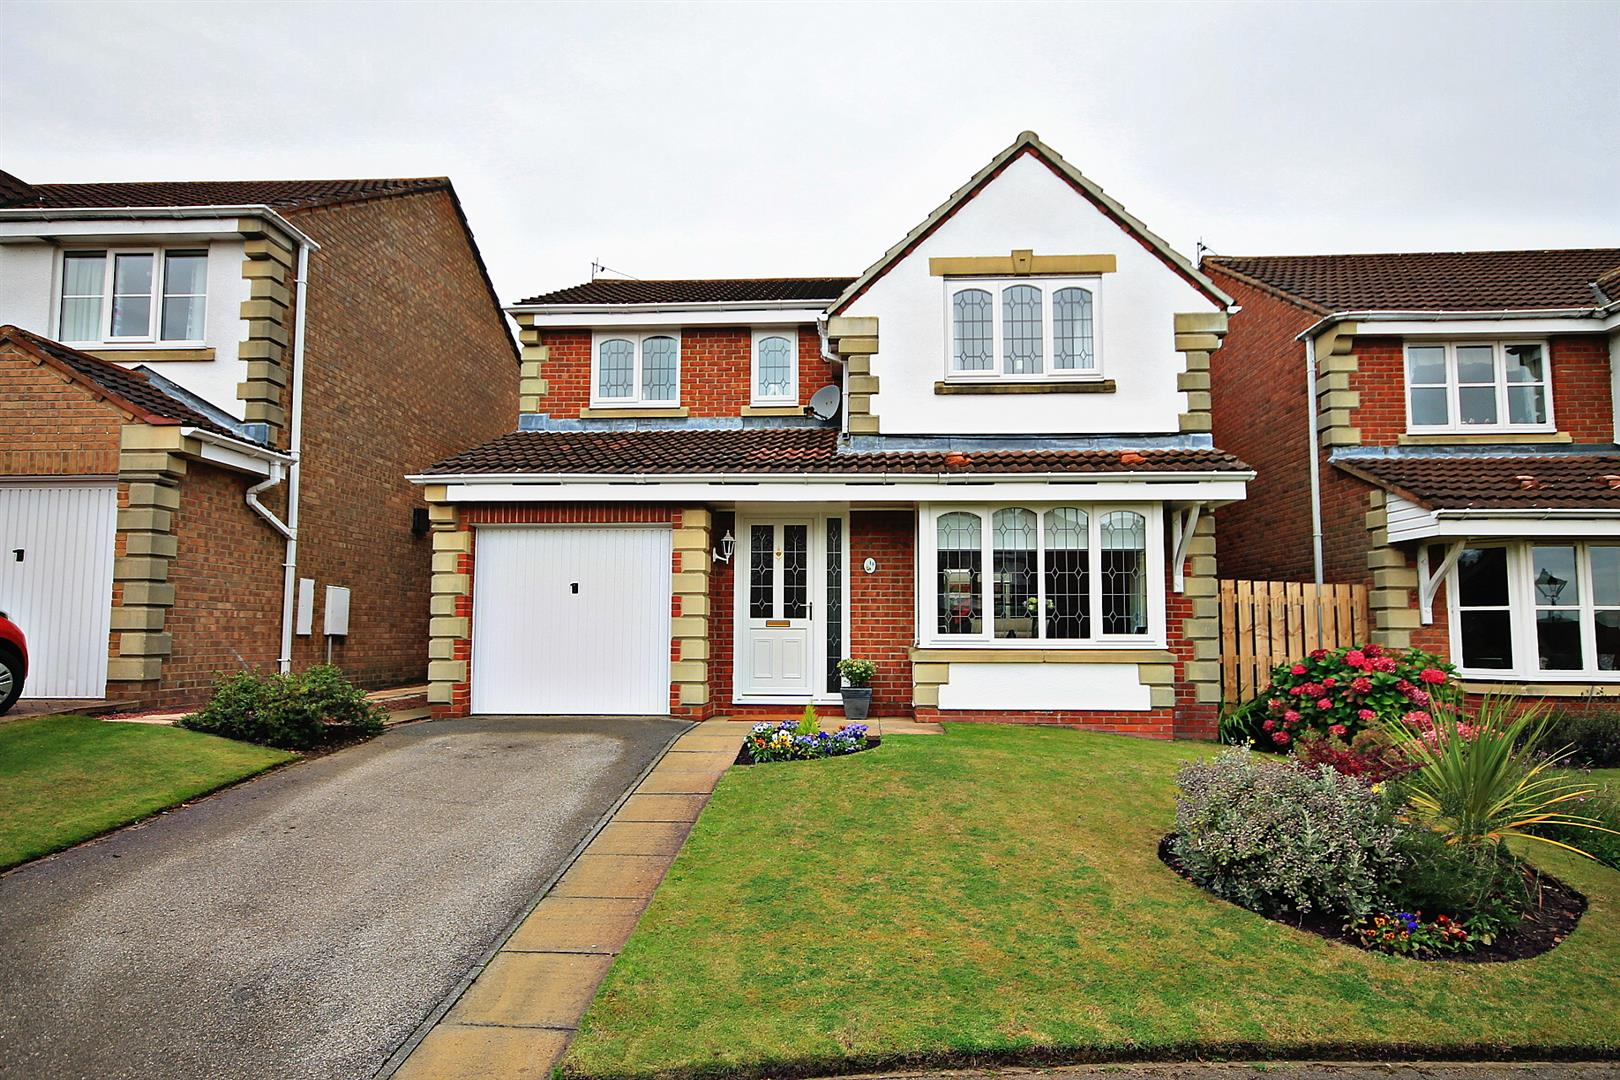 4 Bedrooms Detached House for sale in Oatlands Way, Pity Me, Durham